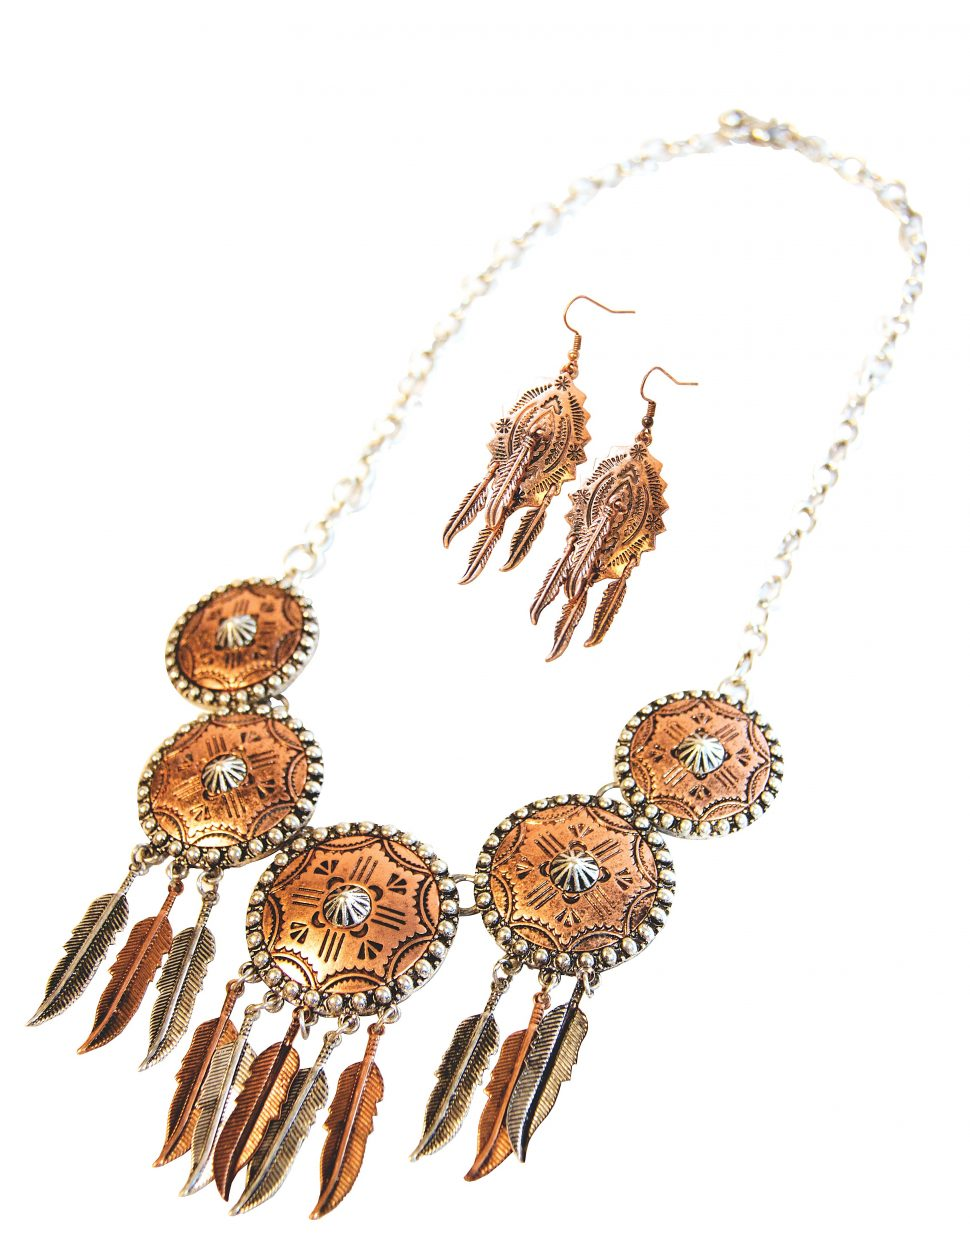 Featured: Sacred Shields Necklace and Earing set $59 for both